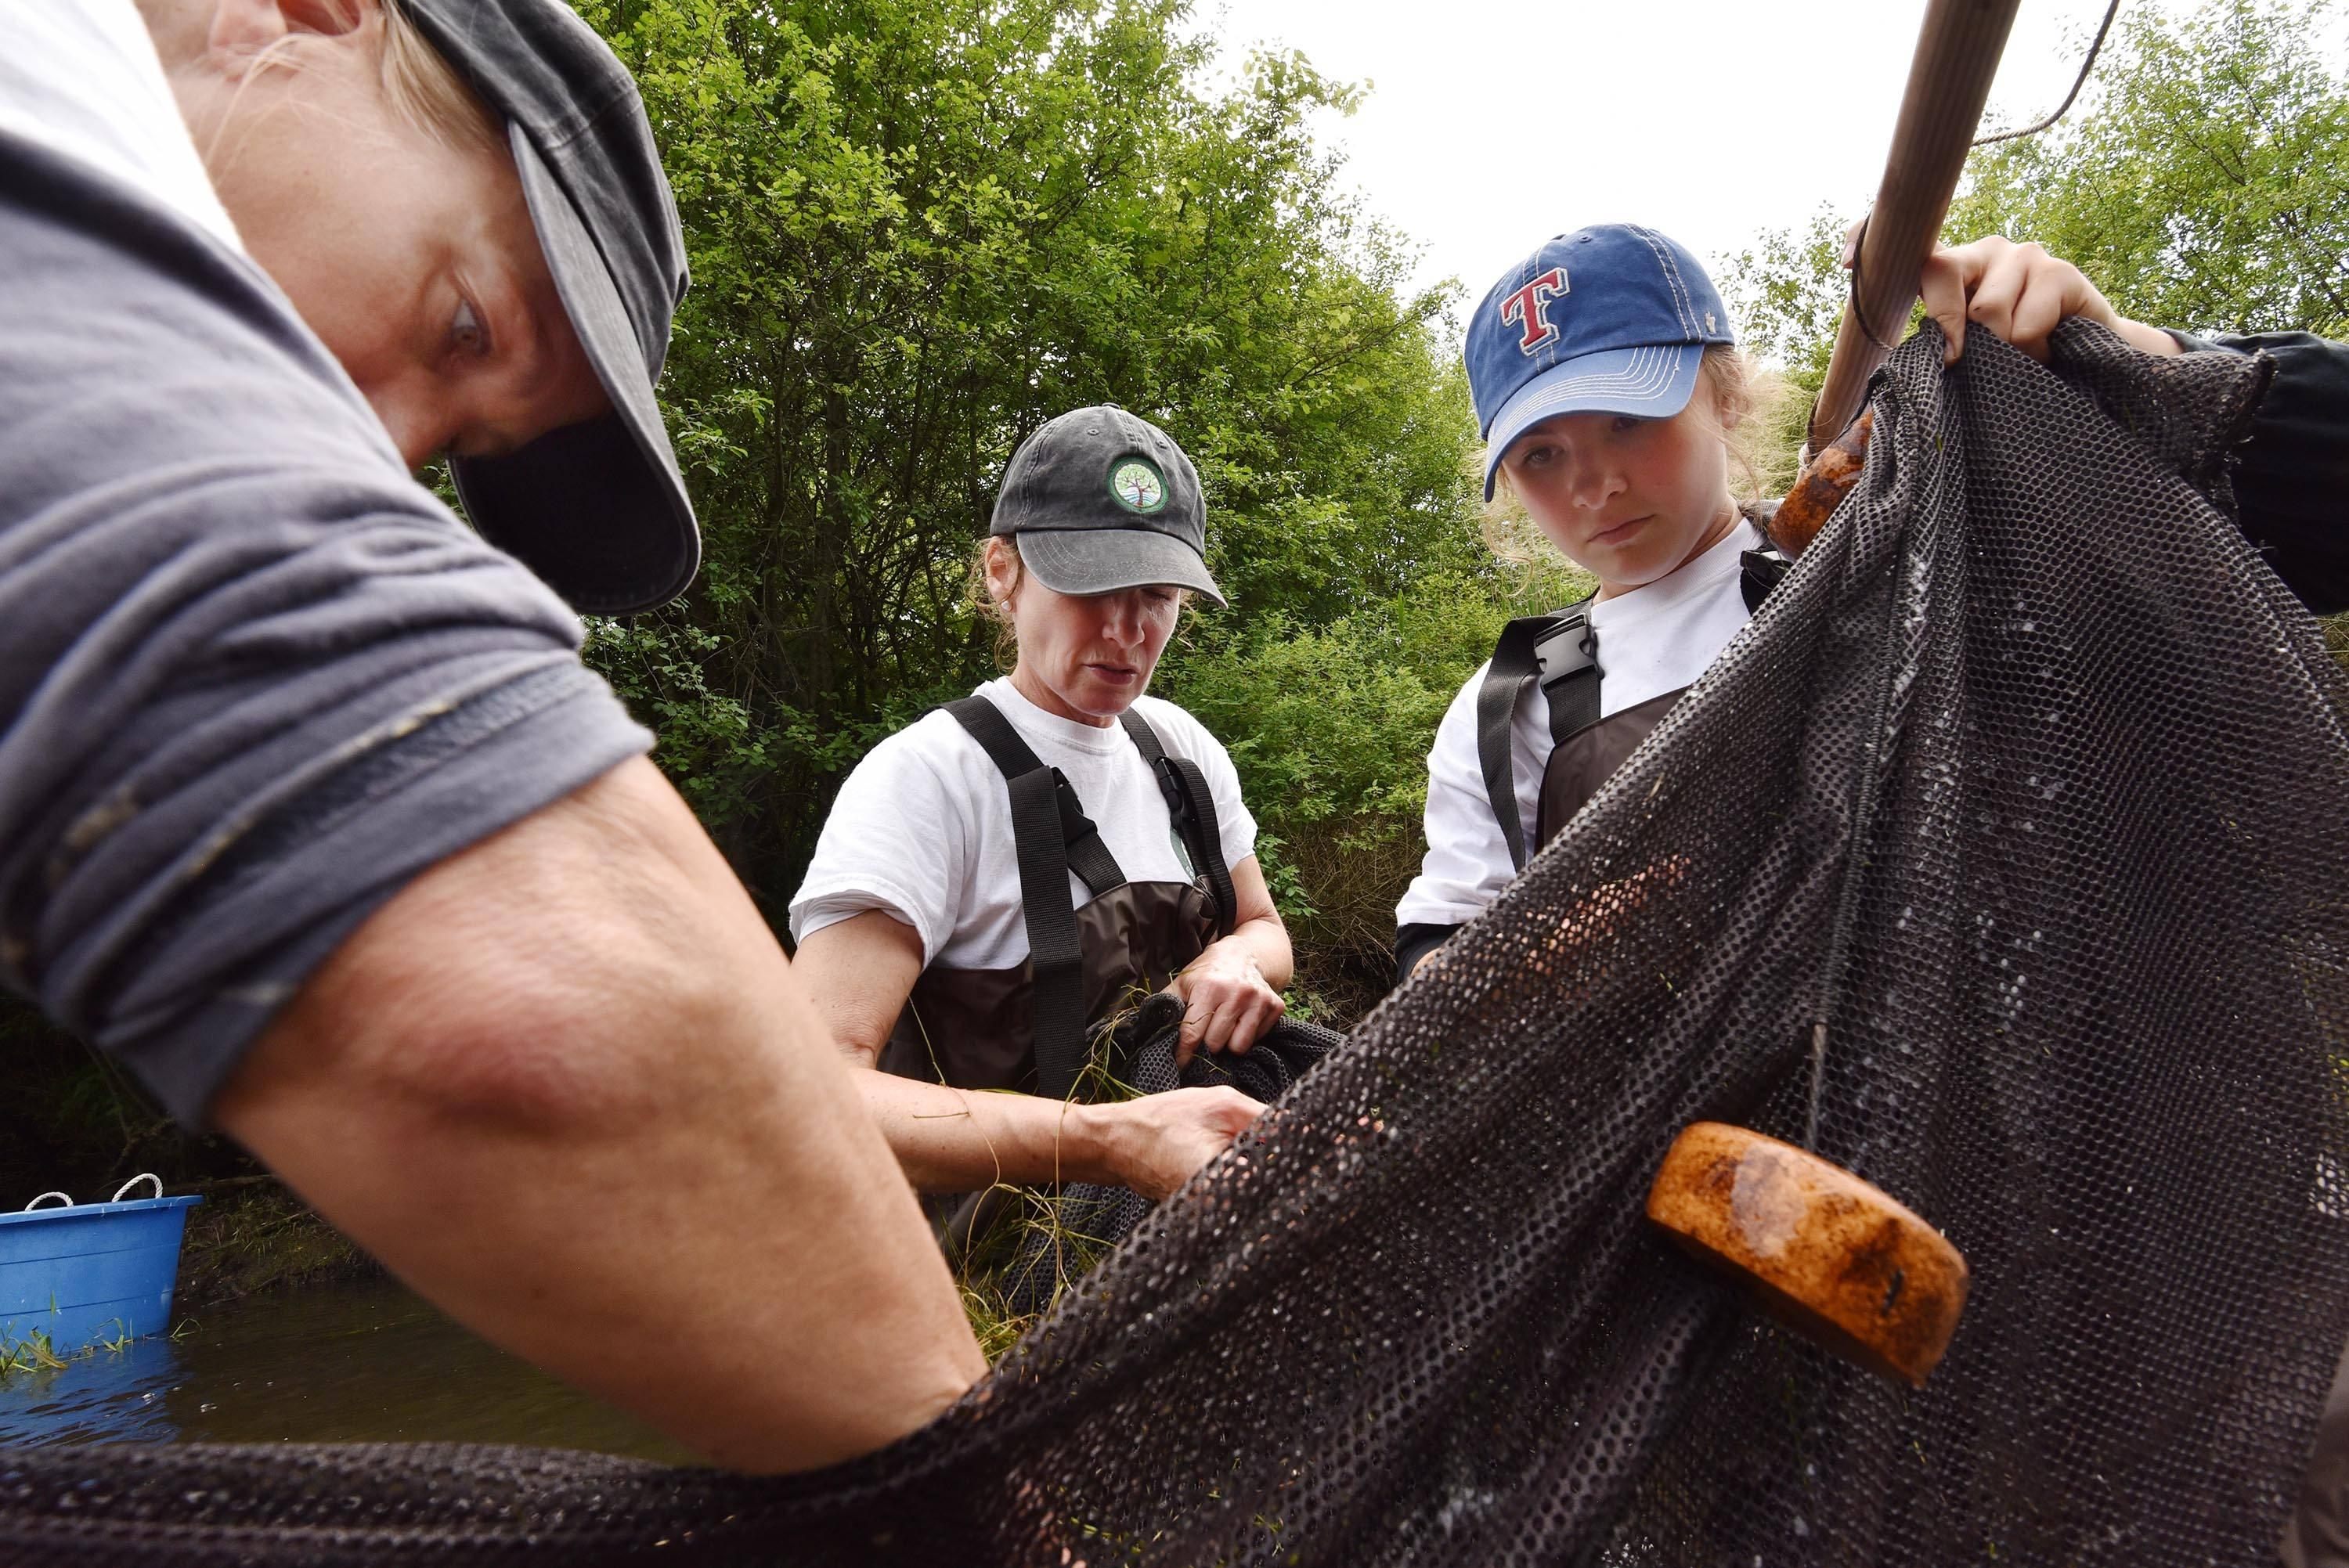 Lisa Woolford, executive director of Barrington Area Conservation Trust, left, and Susan Lenz, the group's director of community engagement and education, and Fremd High School sophomore Nicole Hentges inspect their net to see what they collected from a creek on Sanfilippo estate in Barrington Hills on Tuesday.